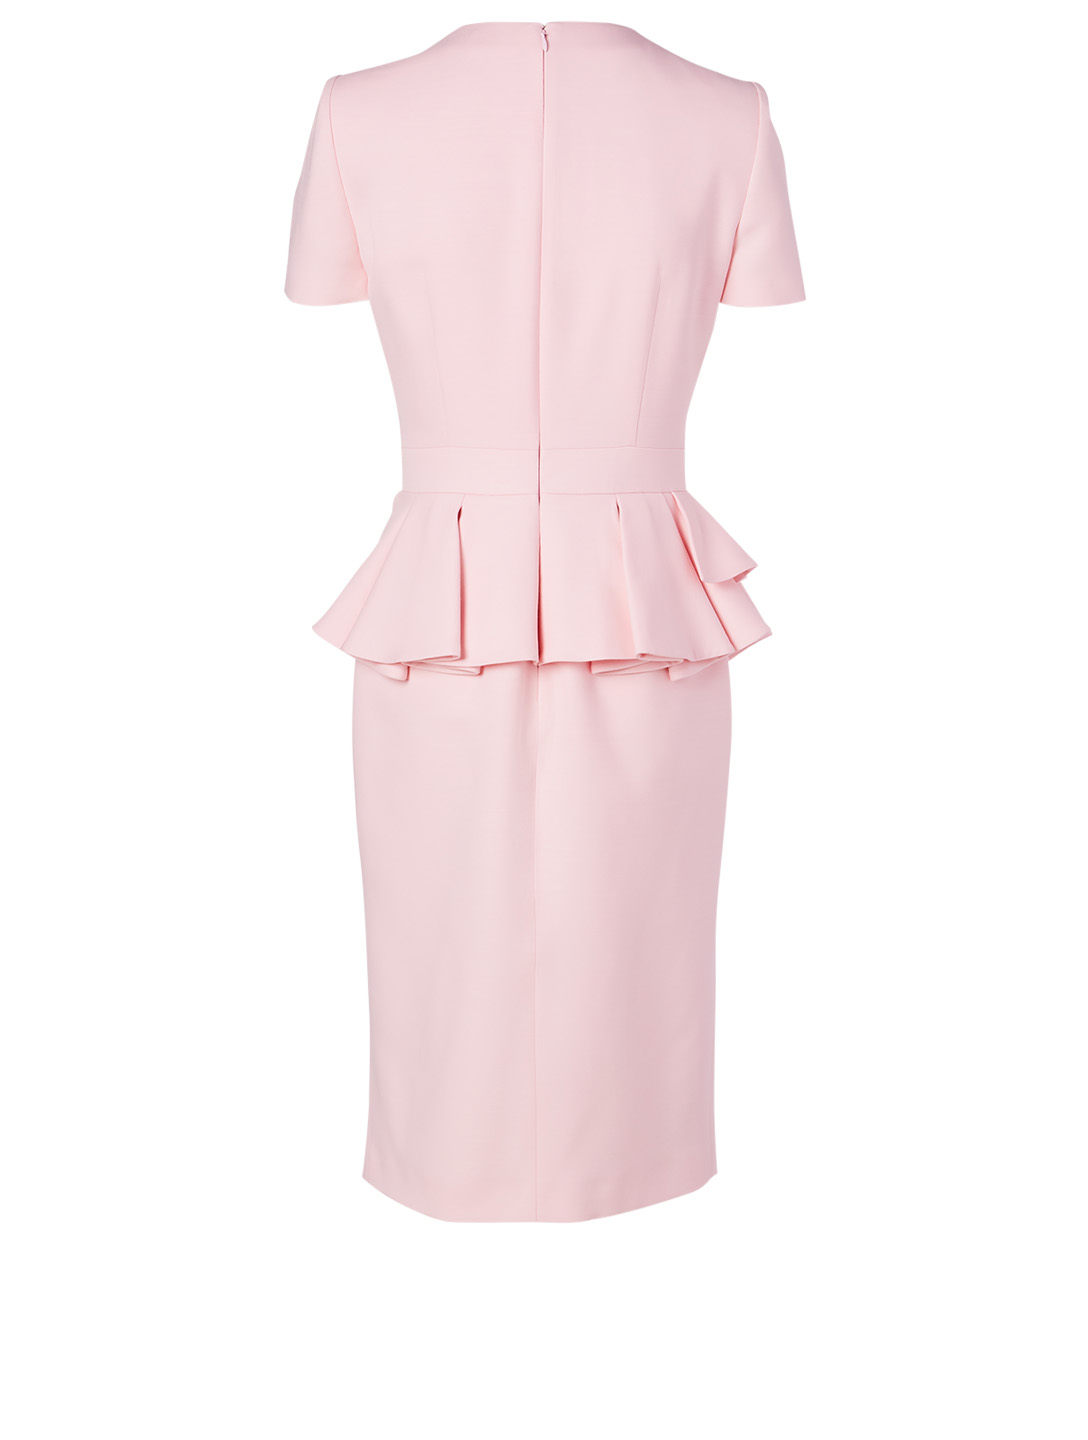 ALEXANDER MCQUEEN Wool And Silk Dress With Peplum Women's Pink